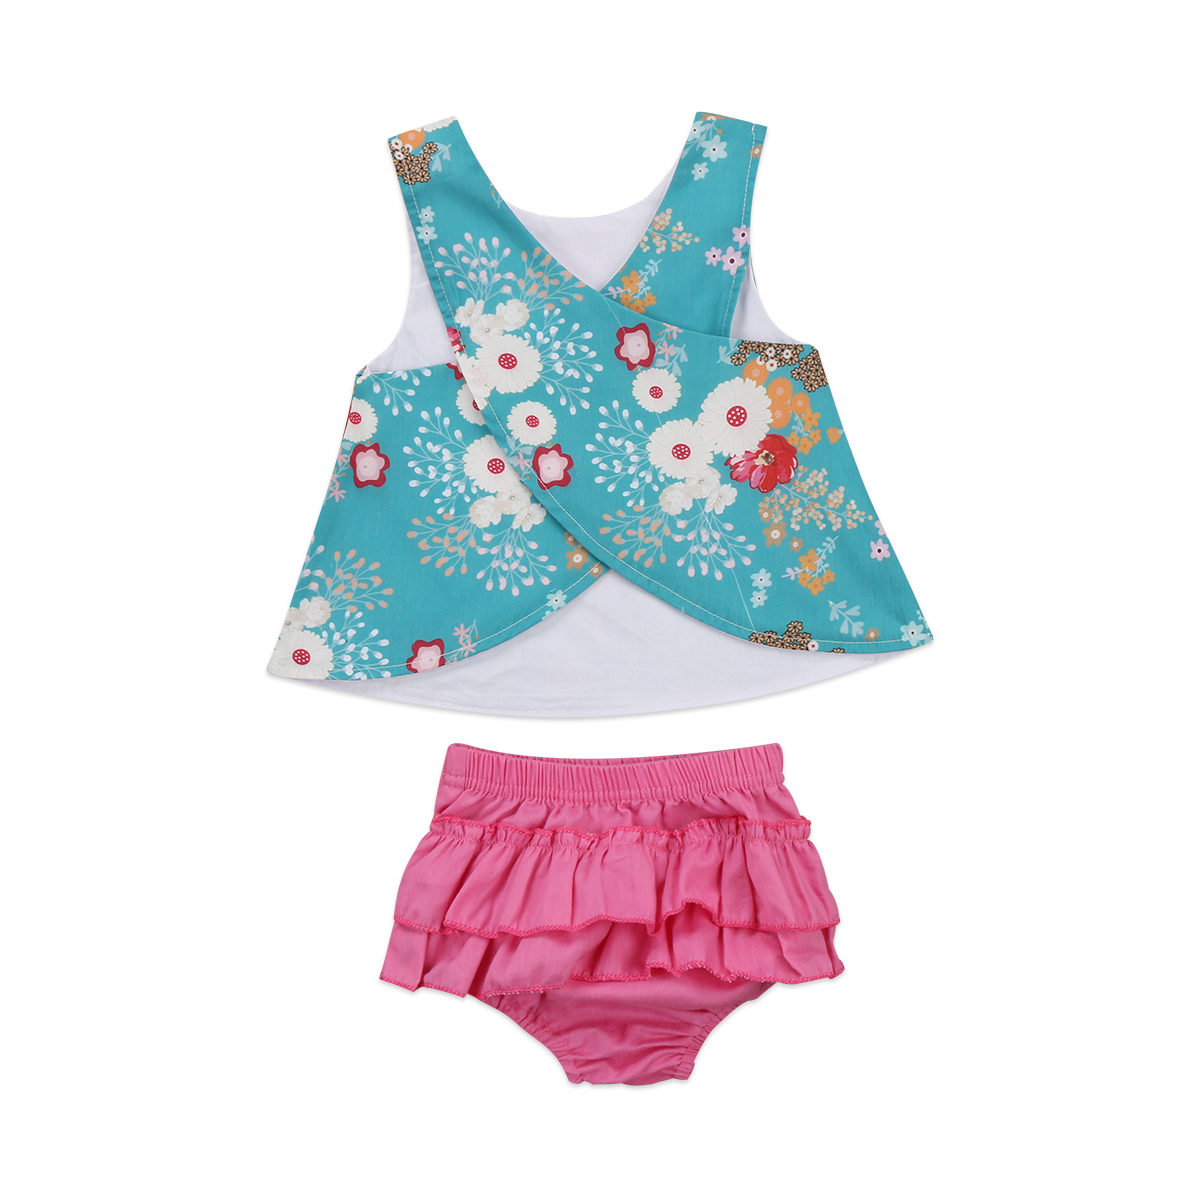 Toddler Girls Kids Baby Girls Clothes Sets Tops Vest Sleeveless Flower Cute Shorts Bottoms 2pcs Outfits Set Clothing hot toddler baby girls summer clothing sets bow sunflower vest shirt shorts kids outfits 1 4y x16